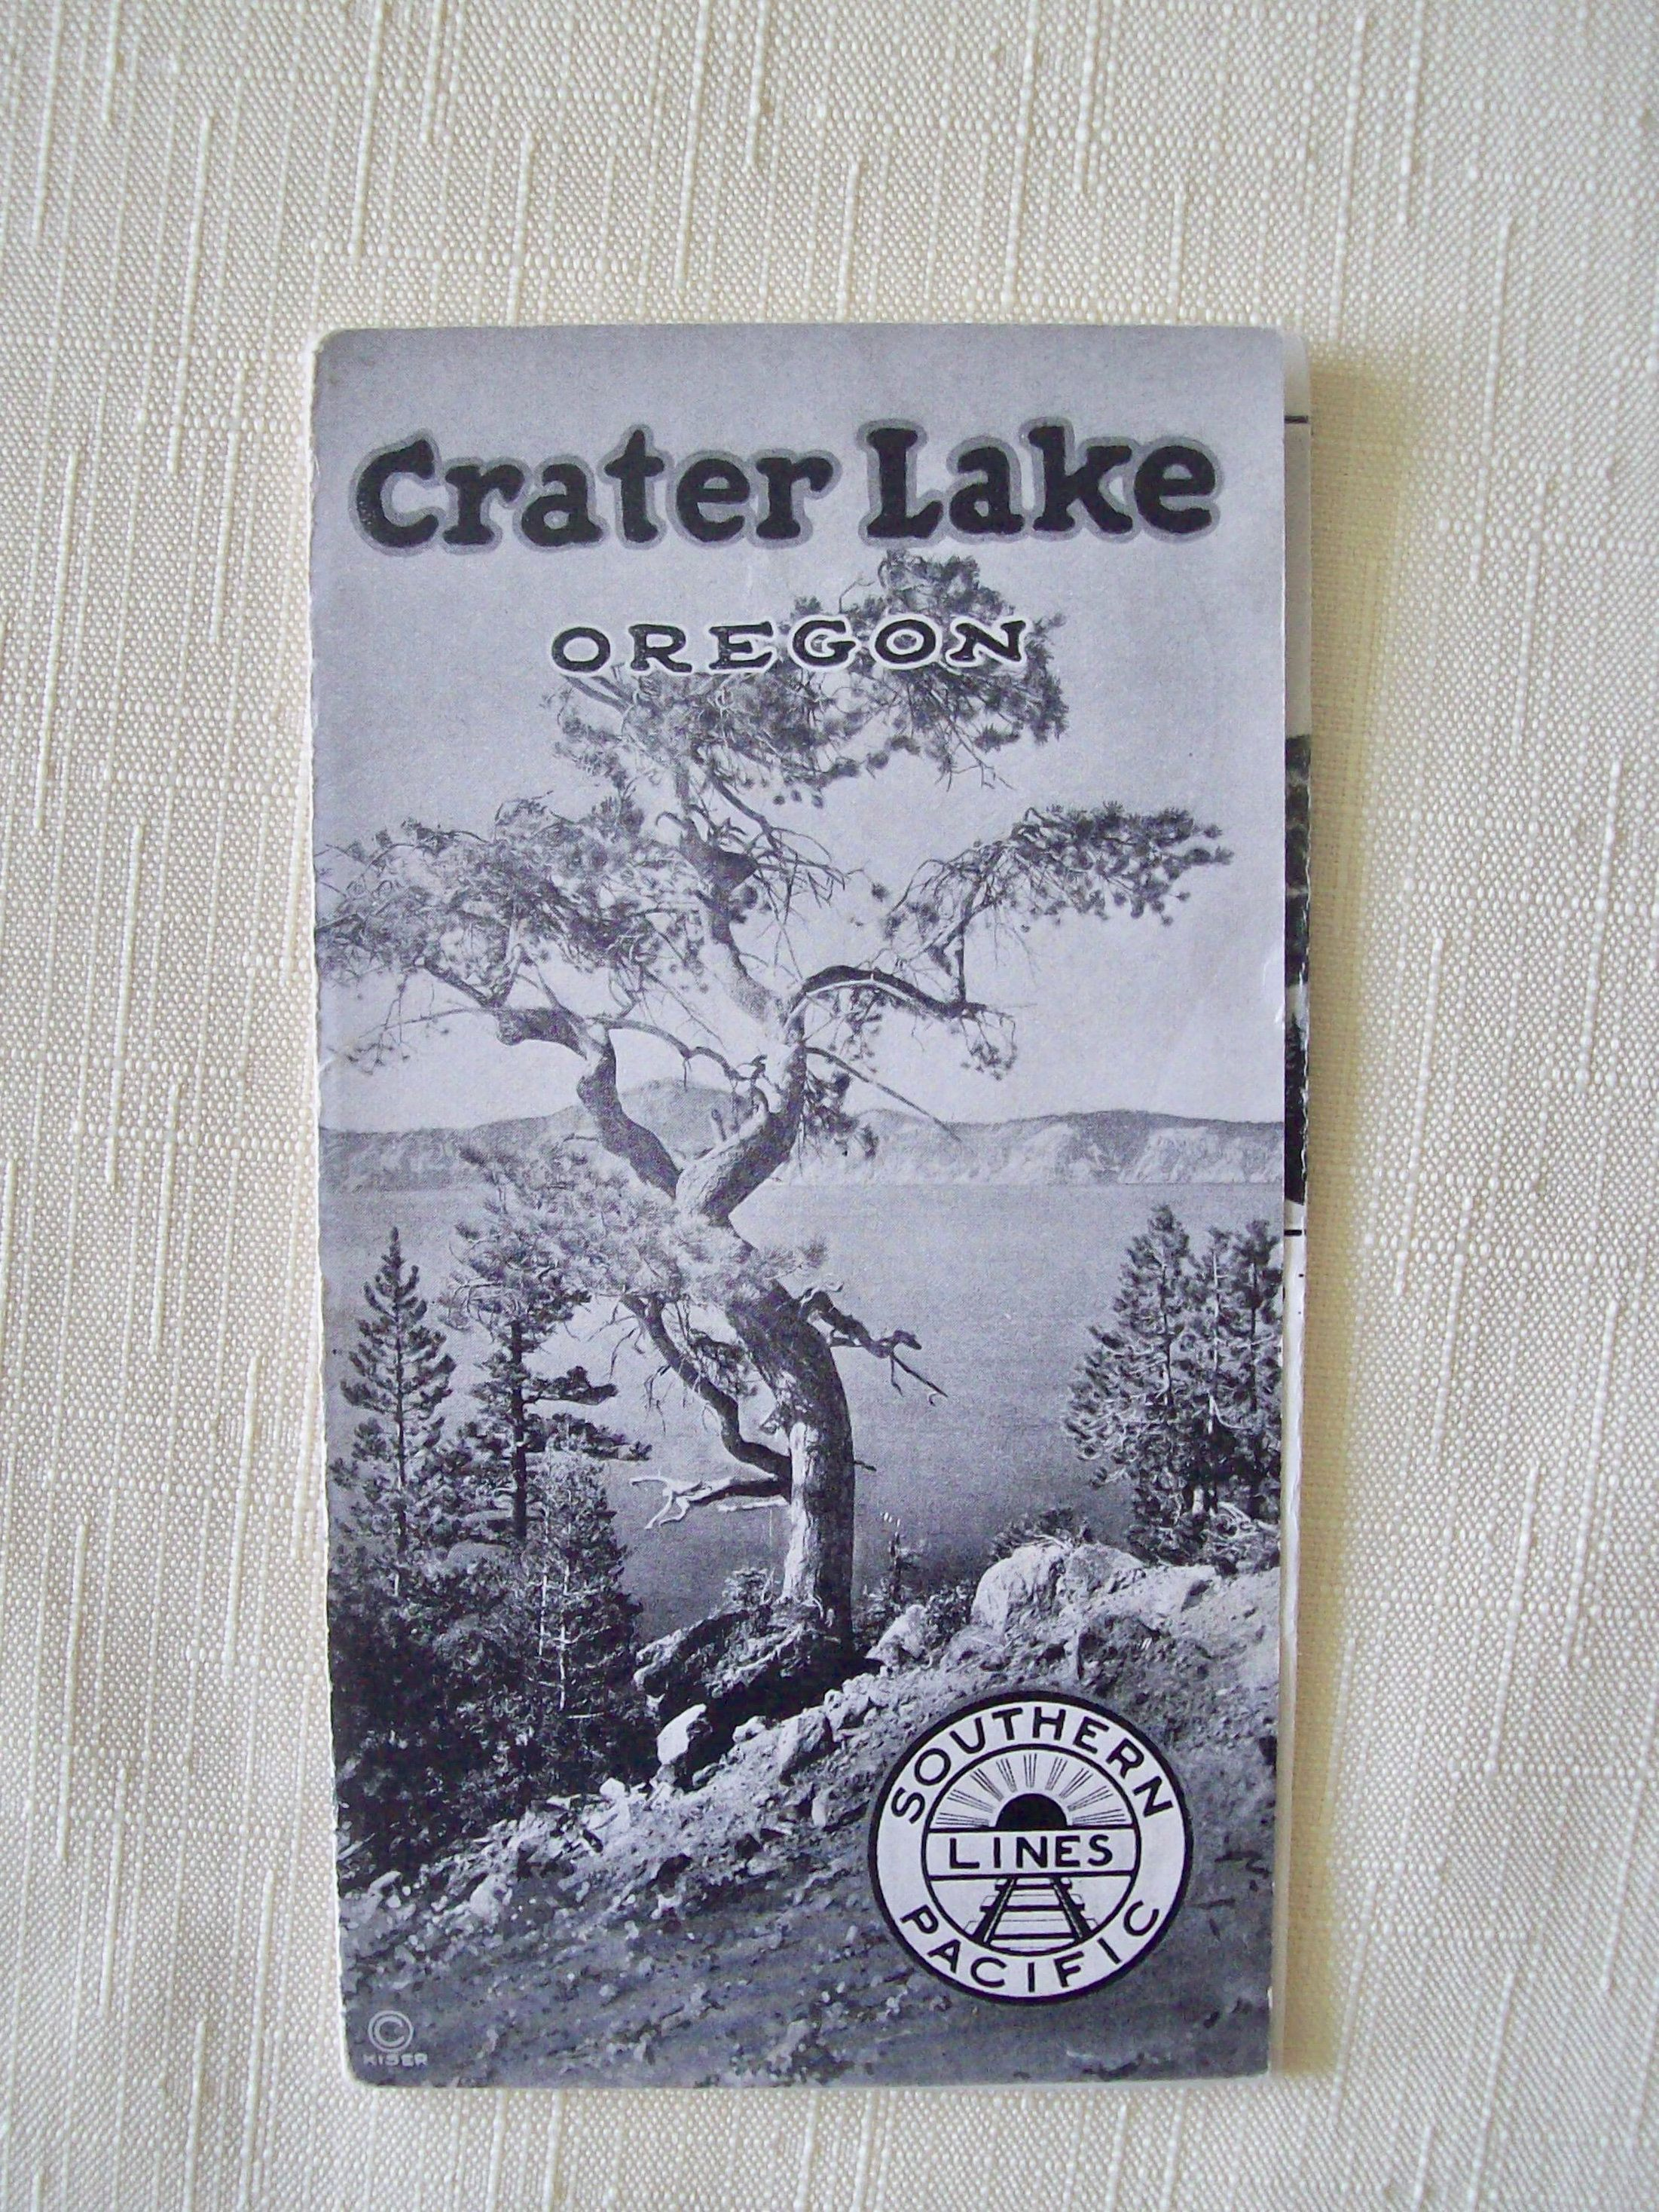 Crater Lake Oregon Souvenir Pamphlet Very Old #craterlakeoregon Crater Lake Oregon Souvenir Pamphlet Very Old #craterlakeoregon Crater Lake Oregon Souvenir Pamphlet Very Old #craterlakeoregon Crater Lake Oregon Souvenir Pamphlet Very Old #craterlakeoregon